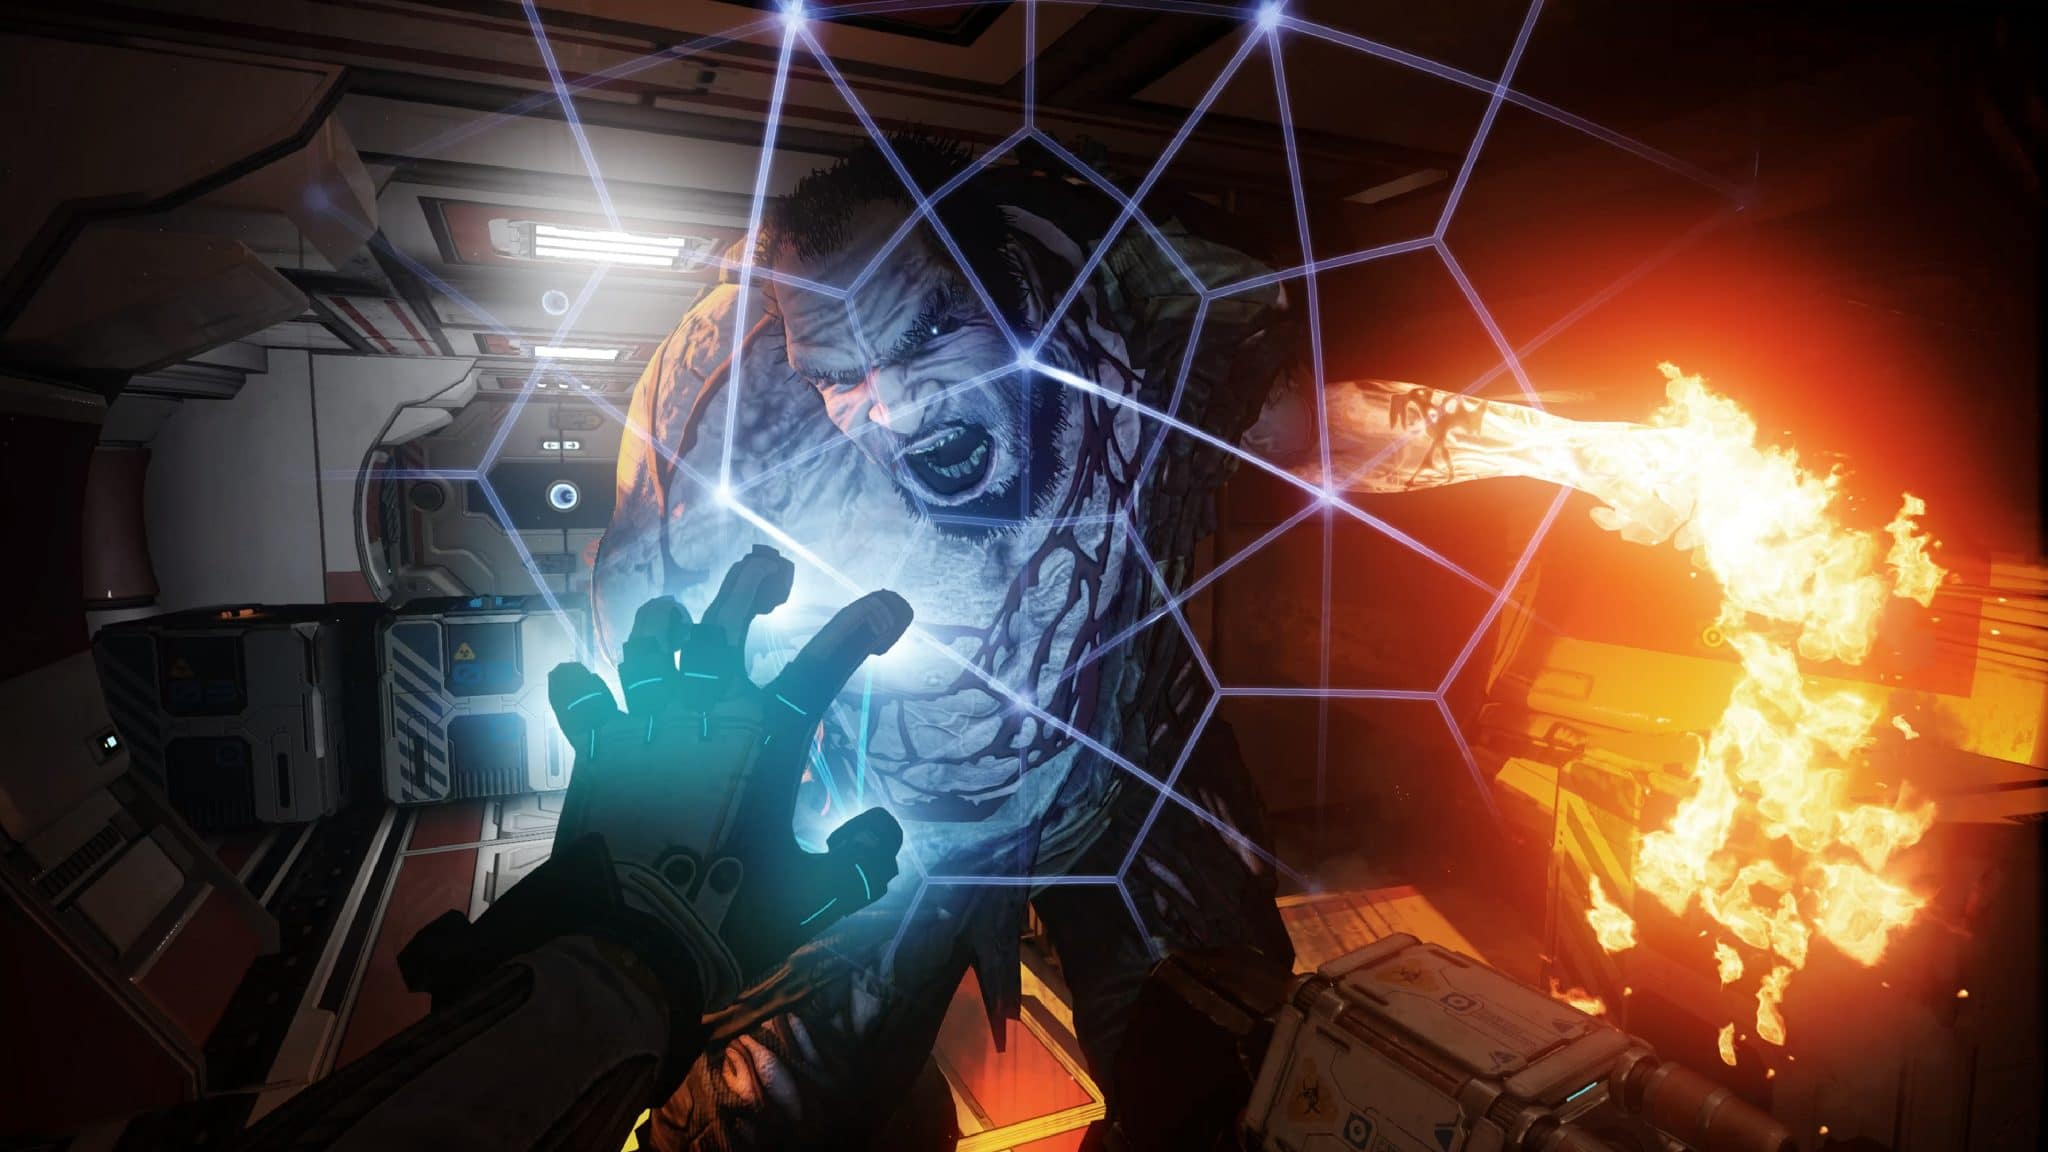 The Persistence PC VR